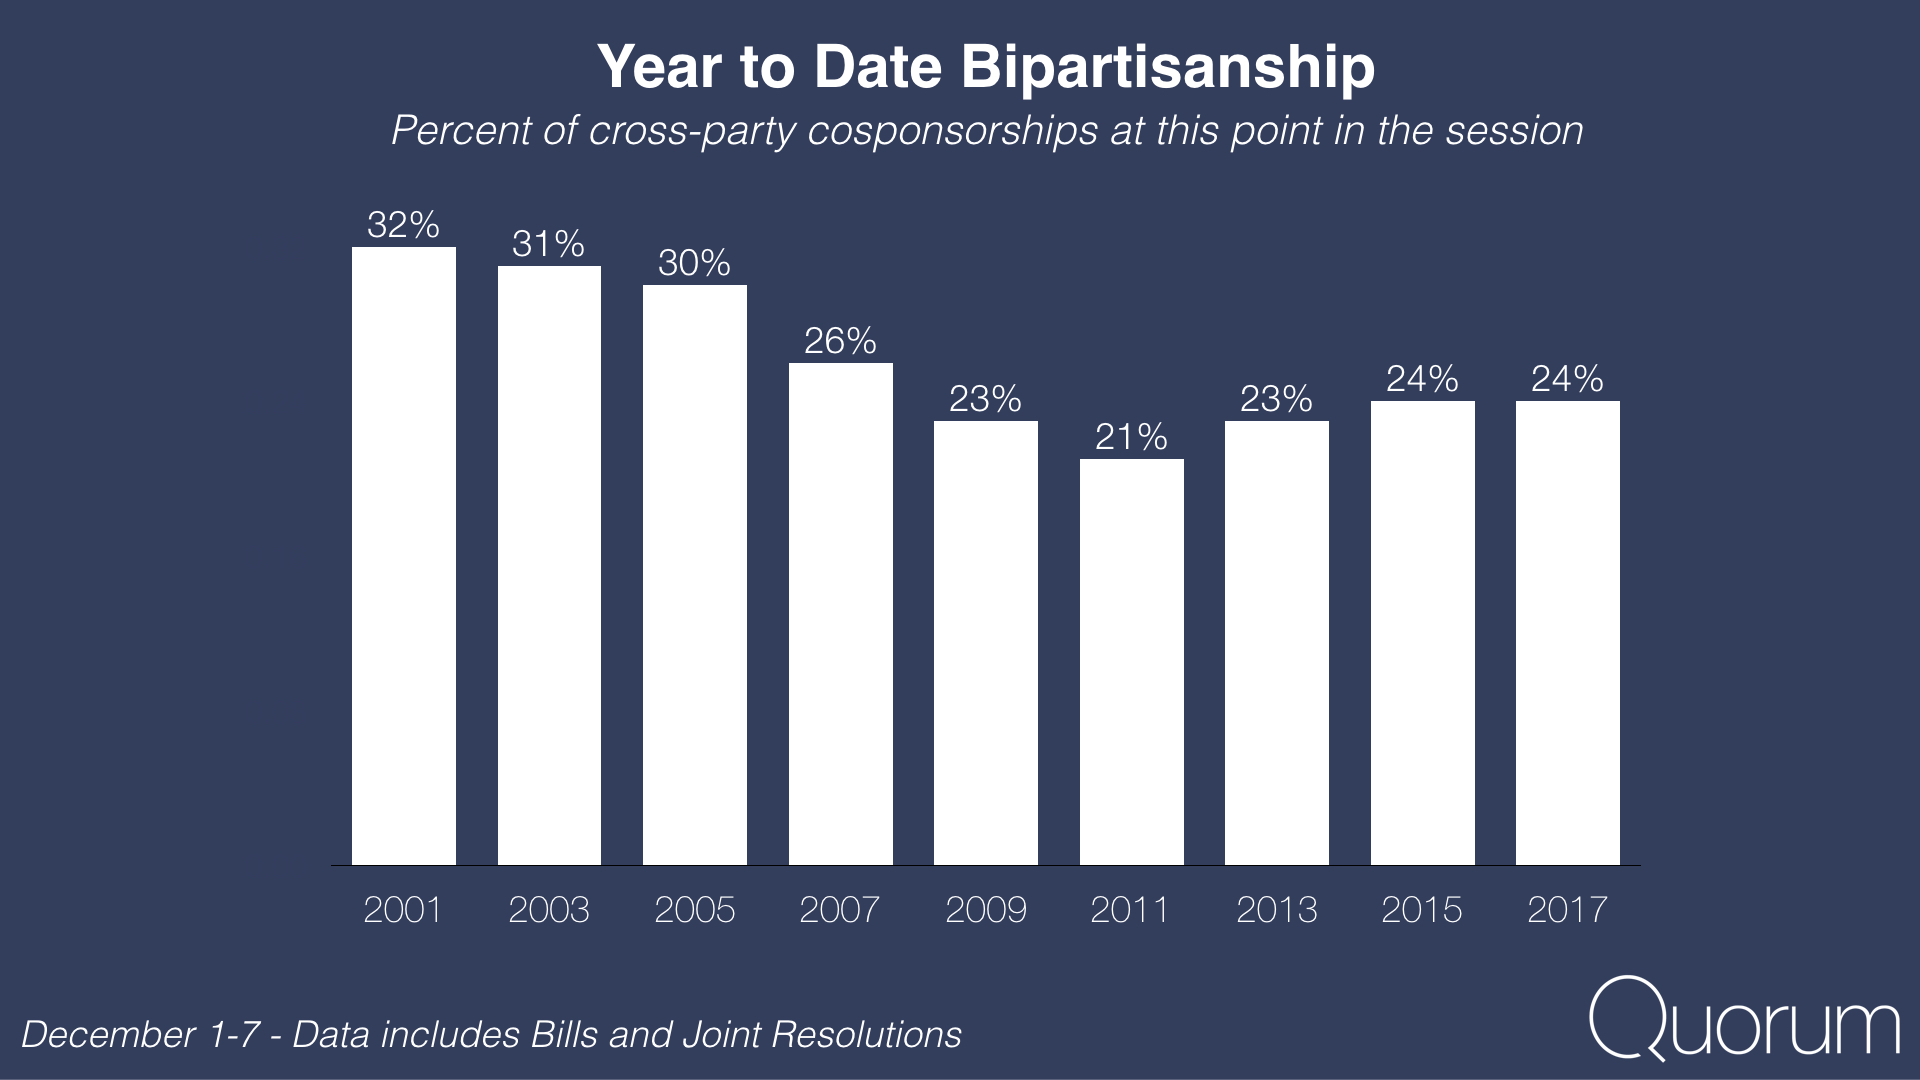 Year to date bipartisanship